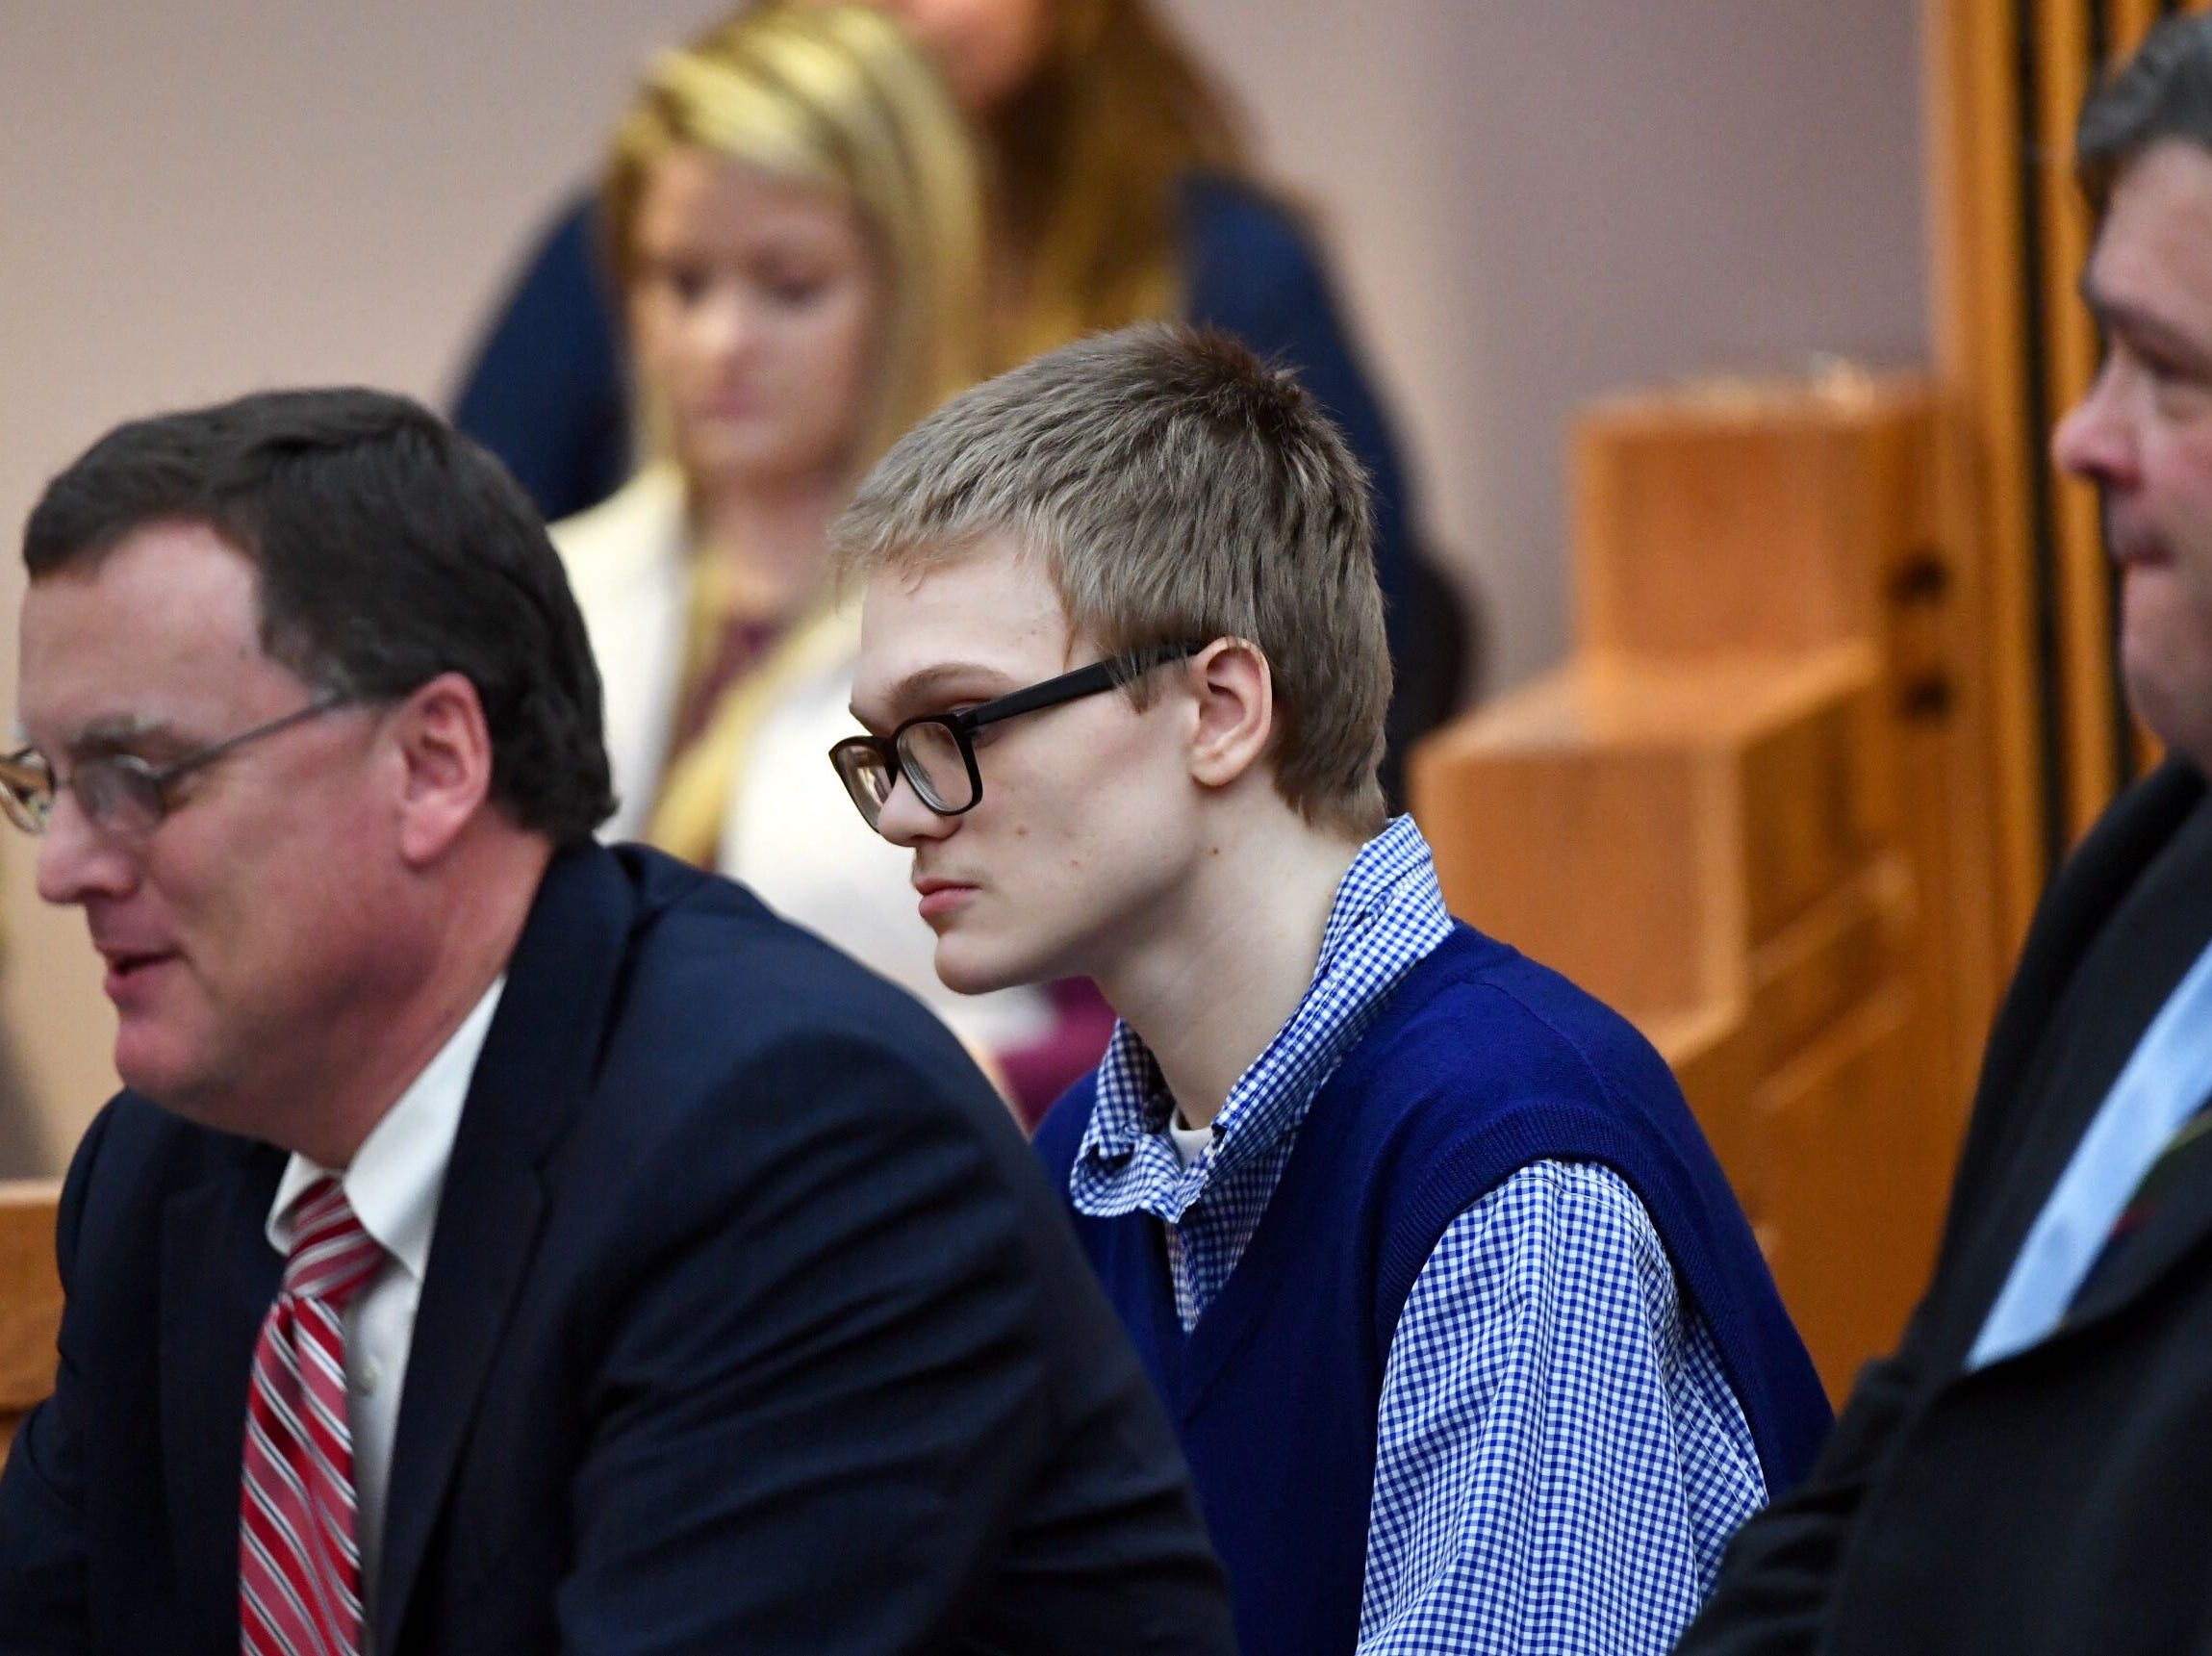 Jesse Osborne, the teen accused in the September 2016 shooting at Townville Elementary School, appears in court on Wednesday, Dec. 12, 2018.